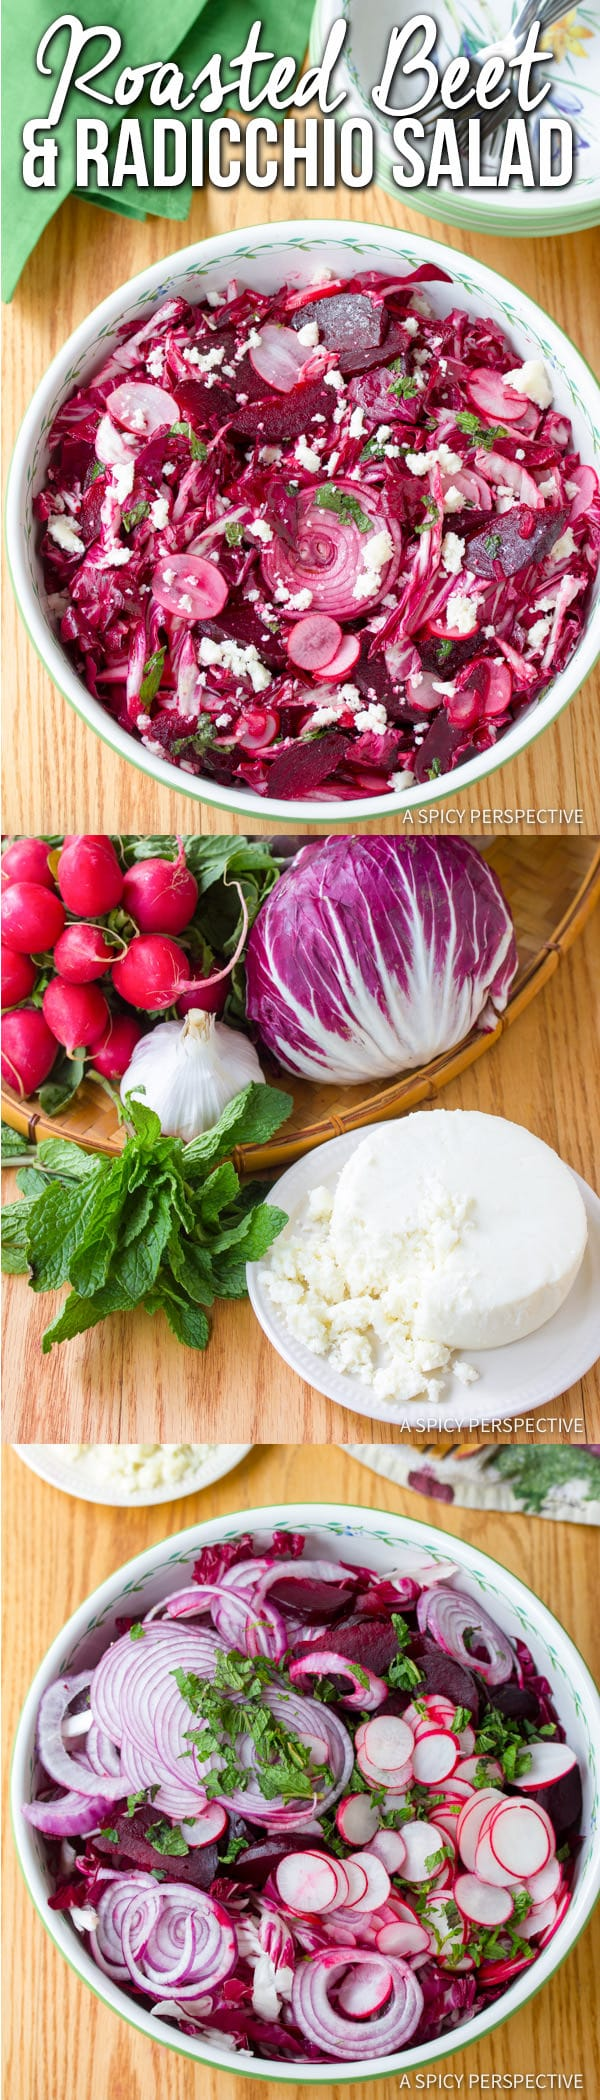 Vibrant Roasted Beet and Radicchio Salad | ASpicyPerspective.com